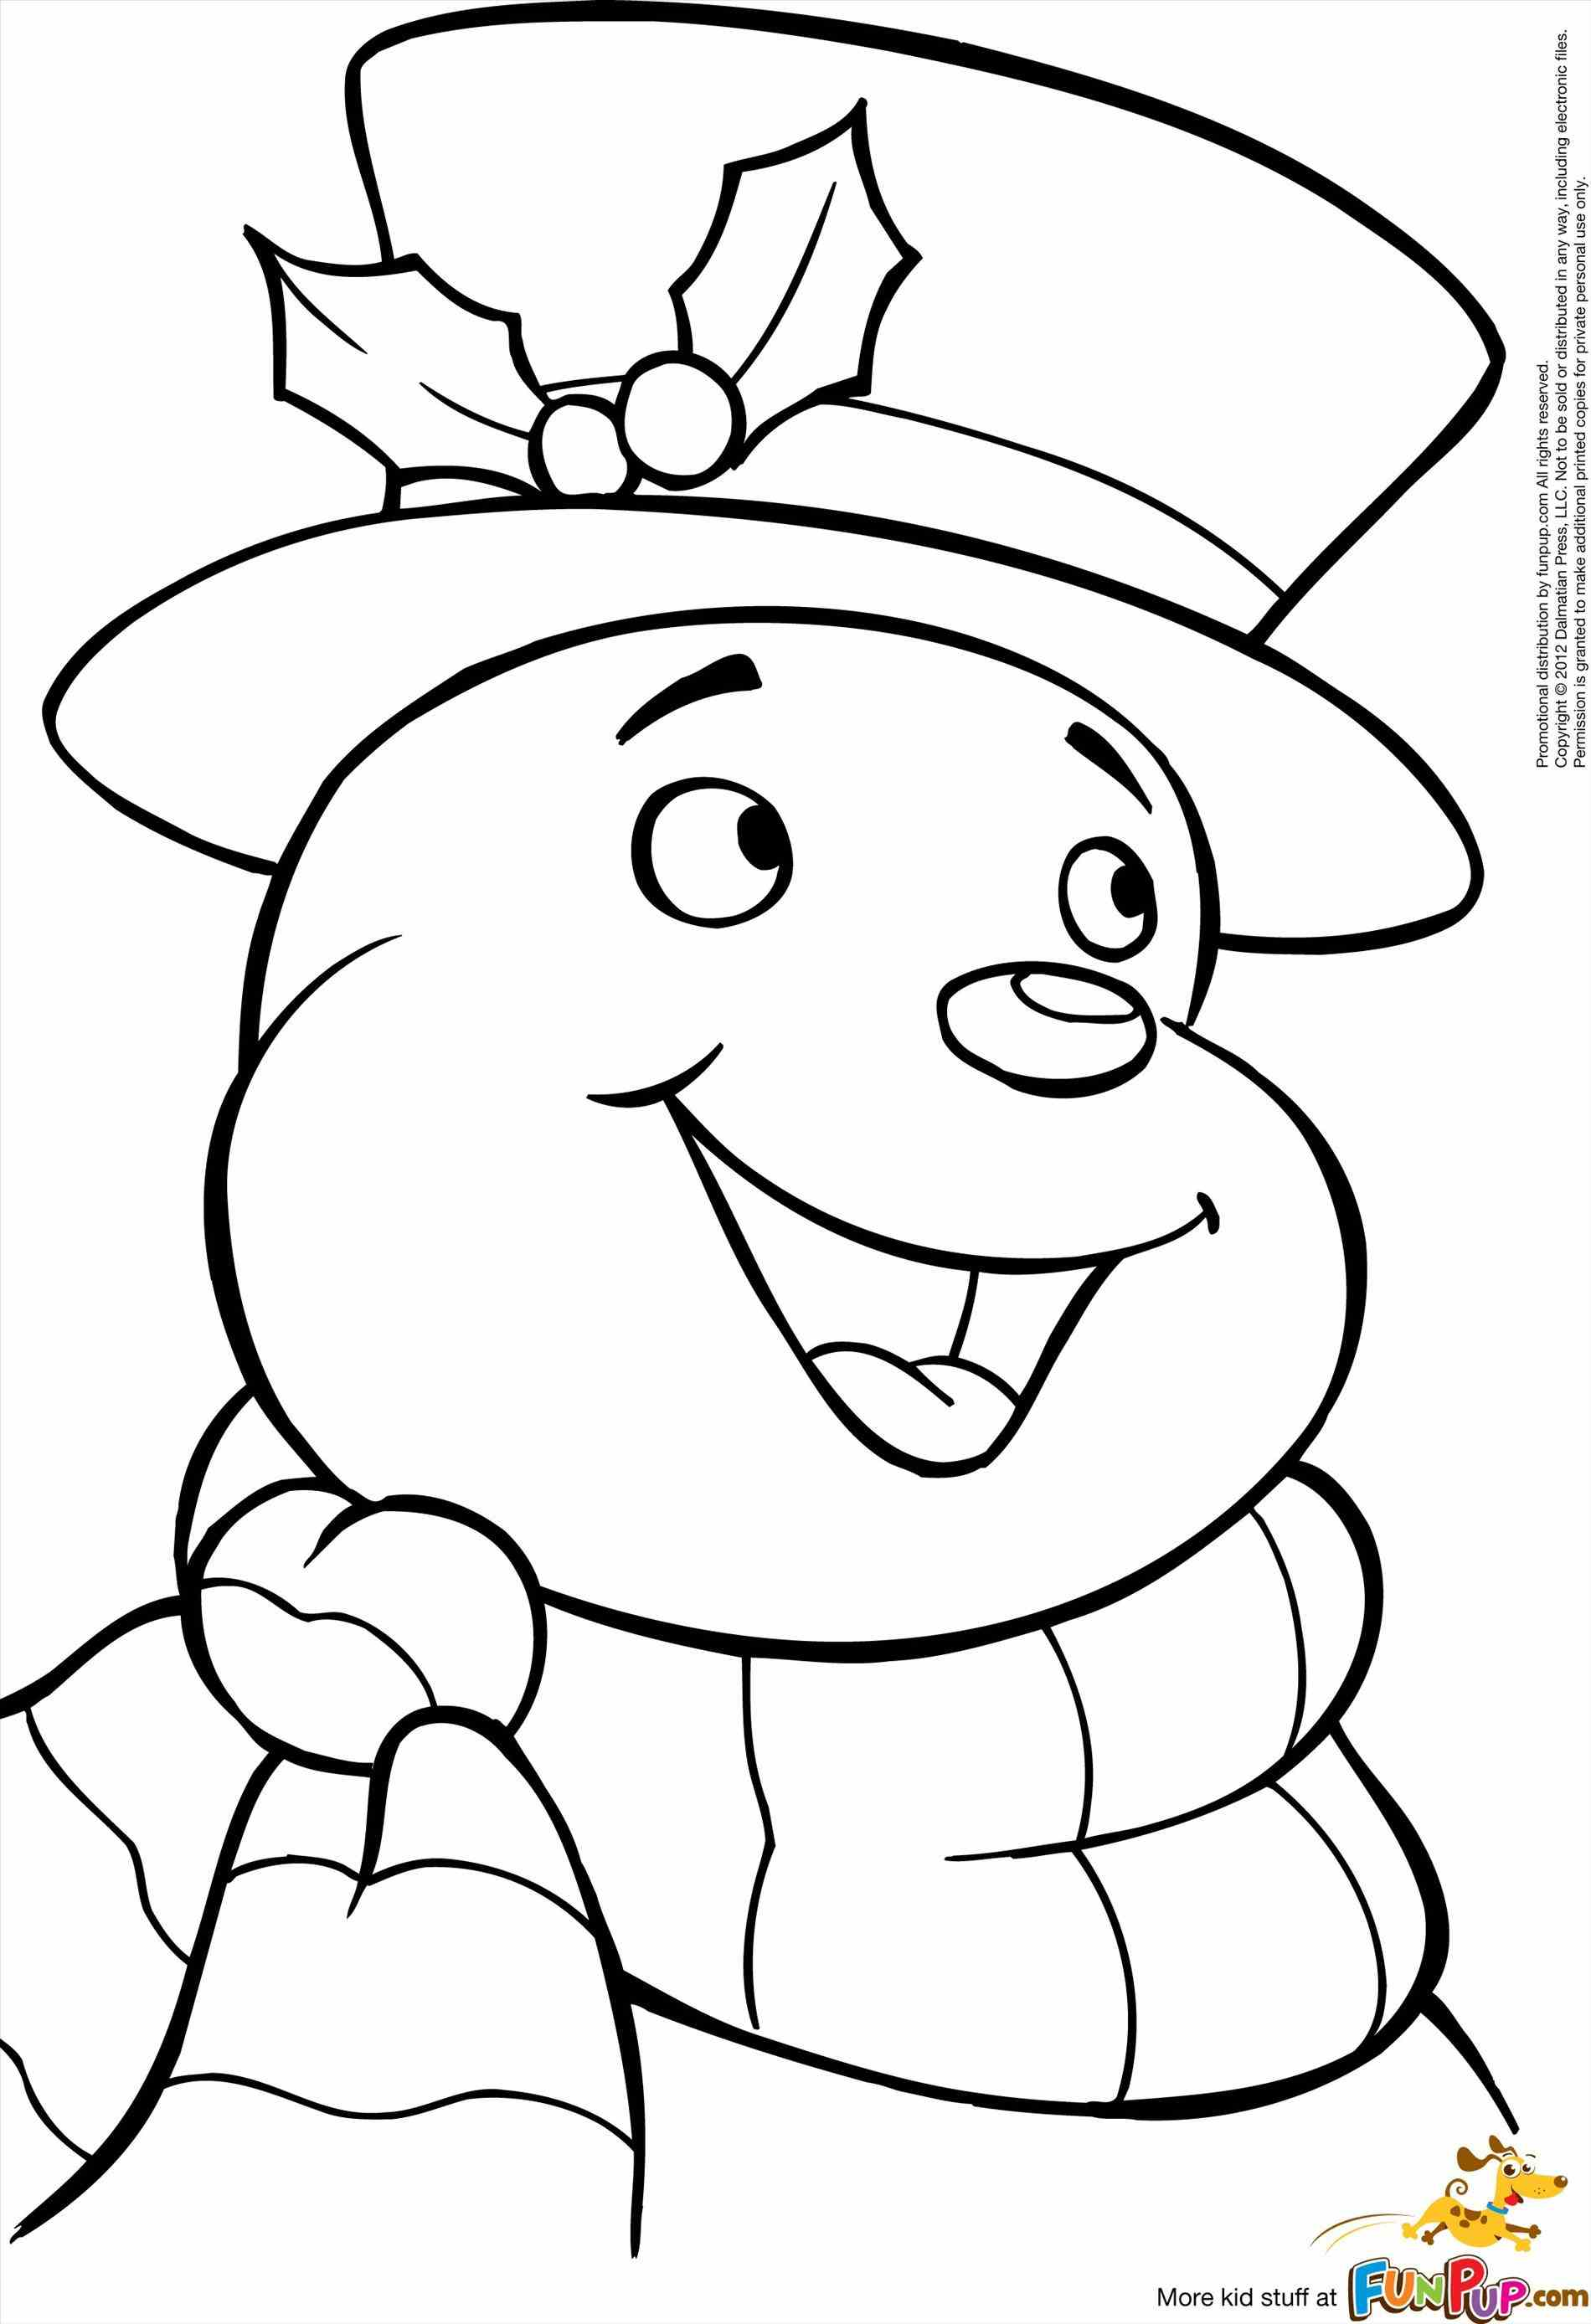 snowman coloring sheet snowman coloringok christmas pages image day pictures sheet snowman coloring